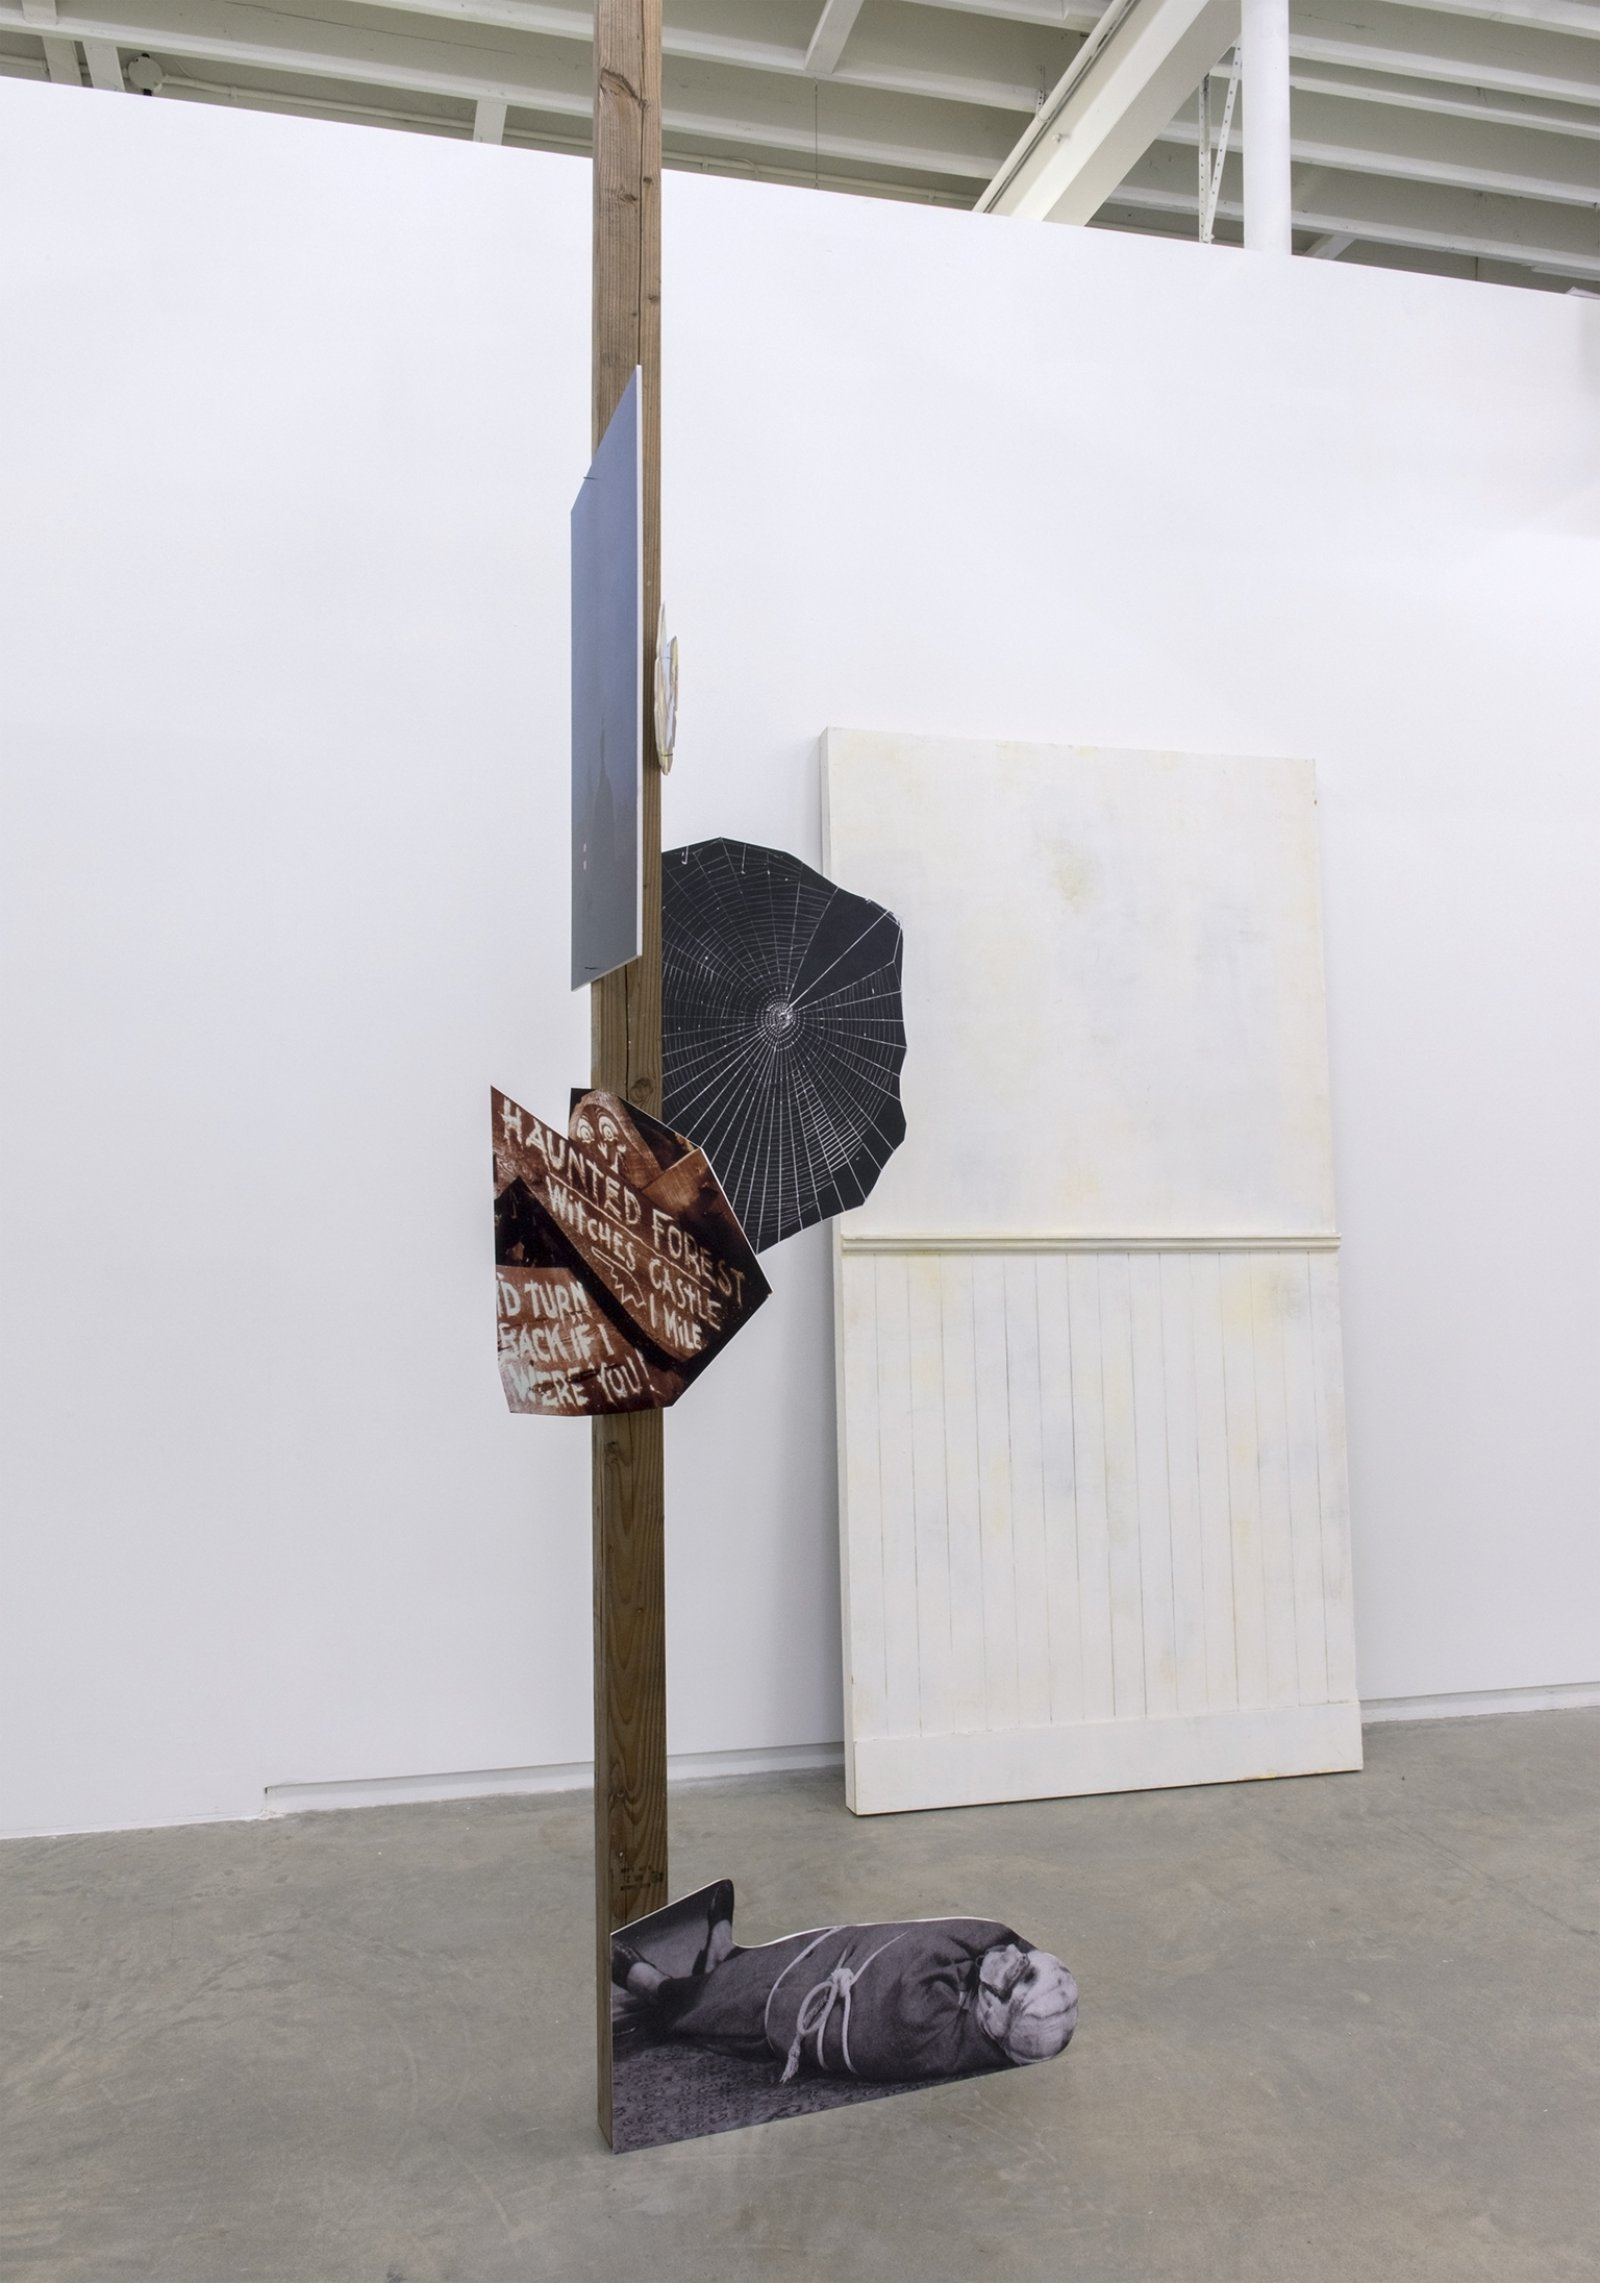 Geoffrey Farmer, I'd turn back if I were you., 2014, douglas fir pole, 8 photographs mounted on foamcore, wooden wall façade, pole: 200 x 4 x 4 in. (508 x 9 x 9 cm), wall façade: 90 x 71 in. (229 x 181 cm) by Geoffrey Farmer